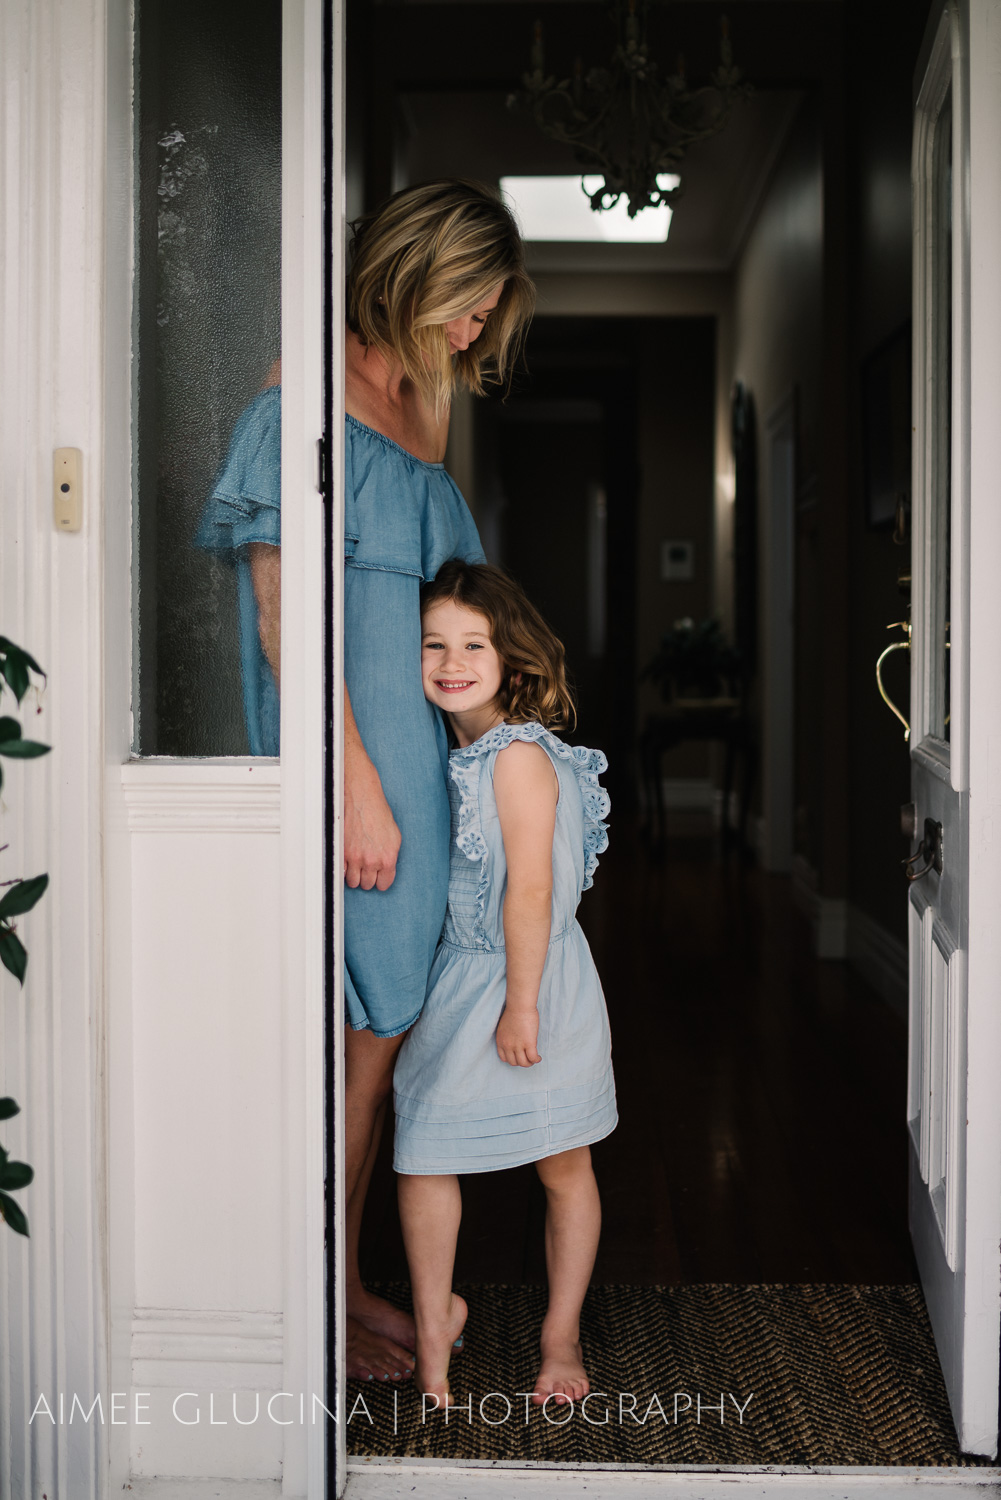 Baudinet Family Session by Aimee Glucina Photography-20.jpg